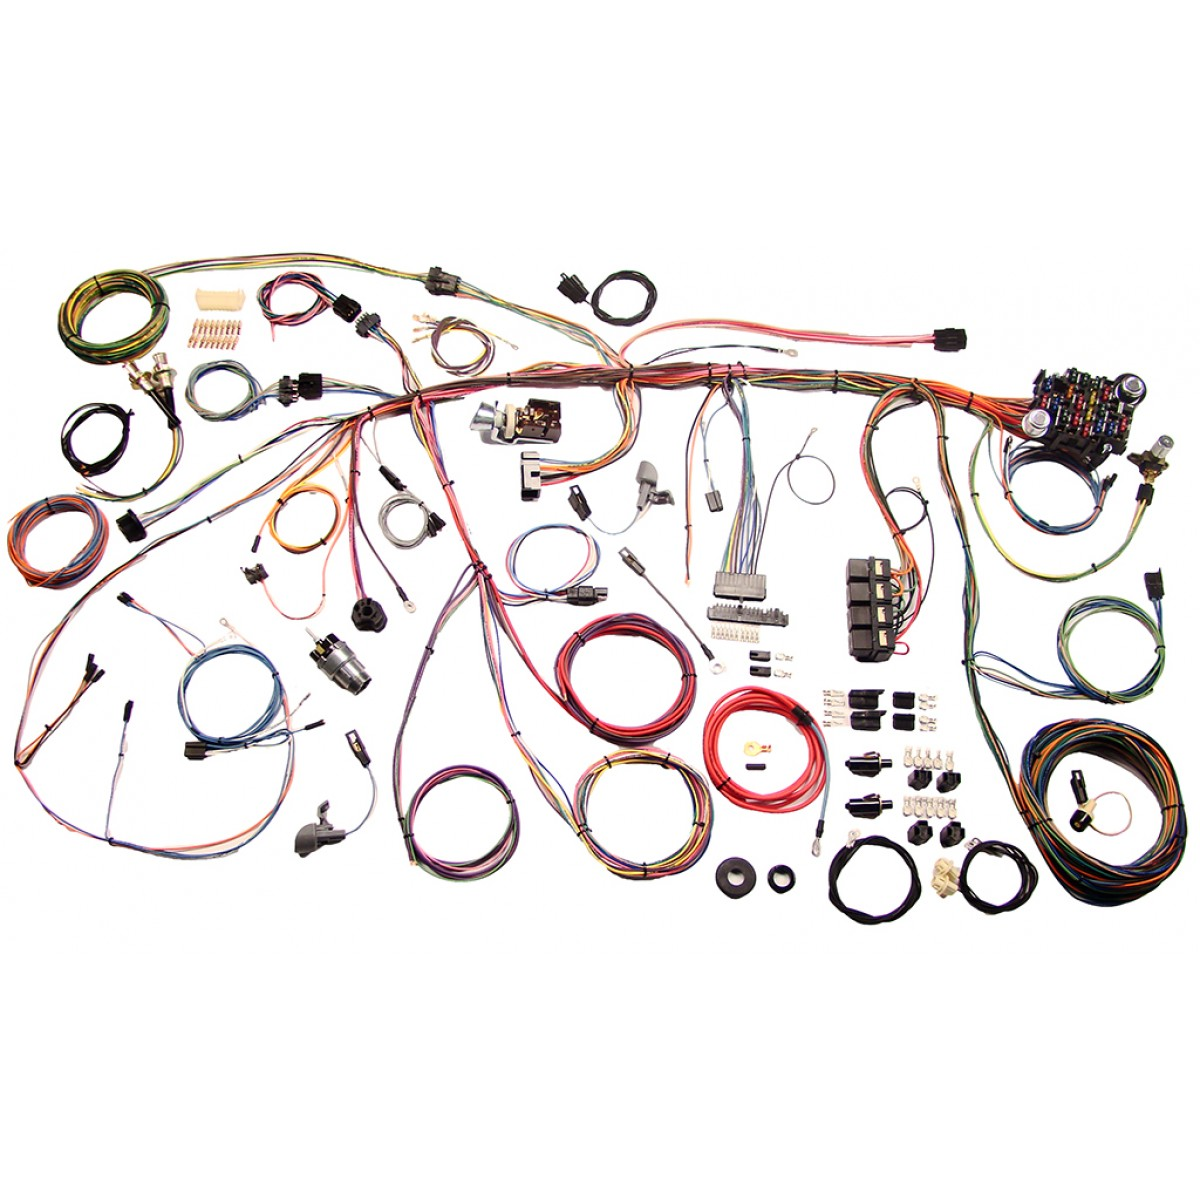 Ford Mustang Wiring Harness Books Of Diagram 86 Svo Engine 1969 Wire Complete Kit Rh Code510 Com 1965 1968